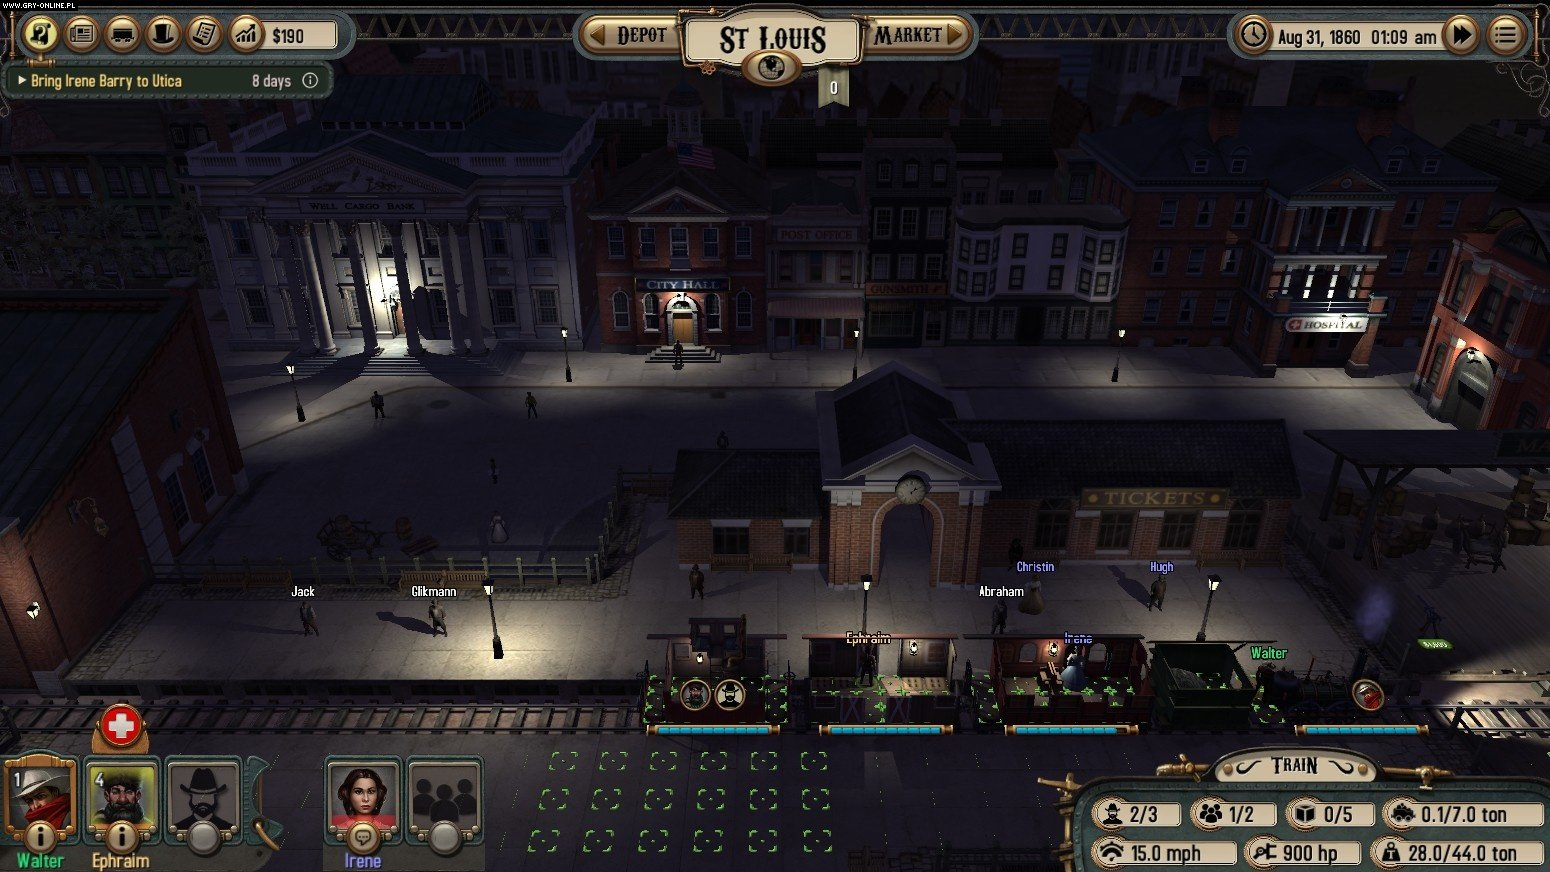 Bounty Train PC Games Image 4/26, Corbie Games, Daedalic Entertainment